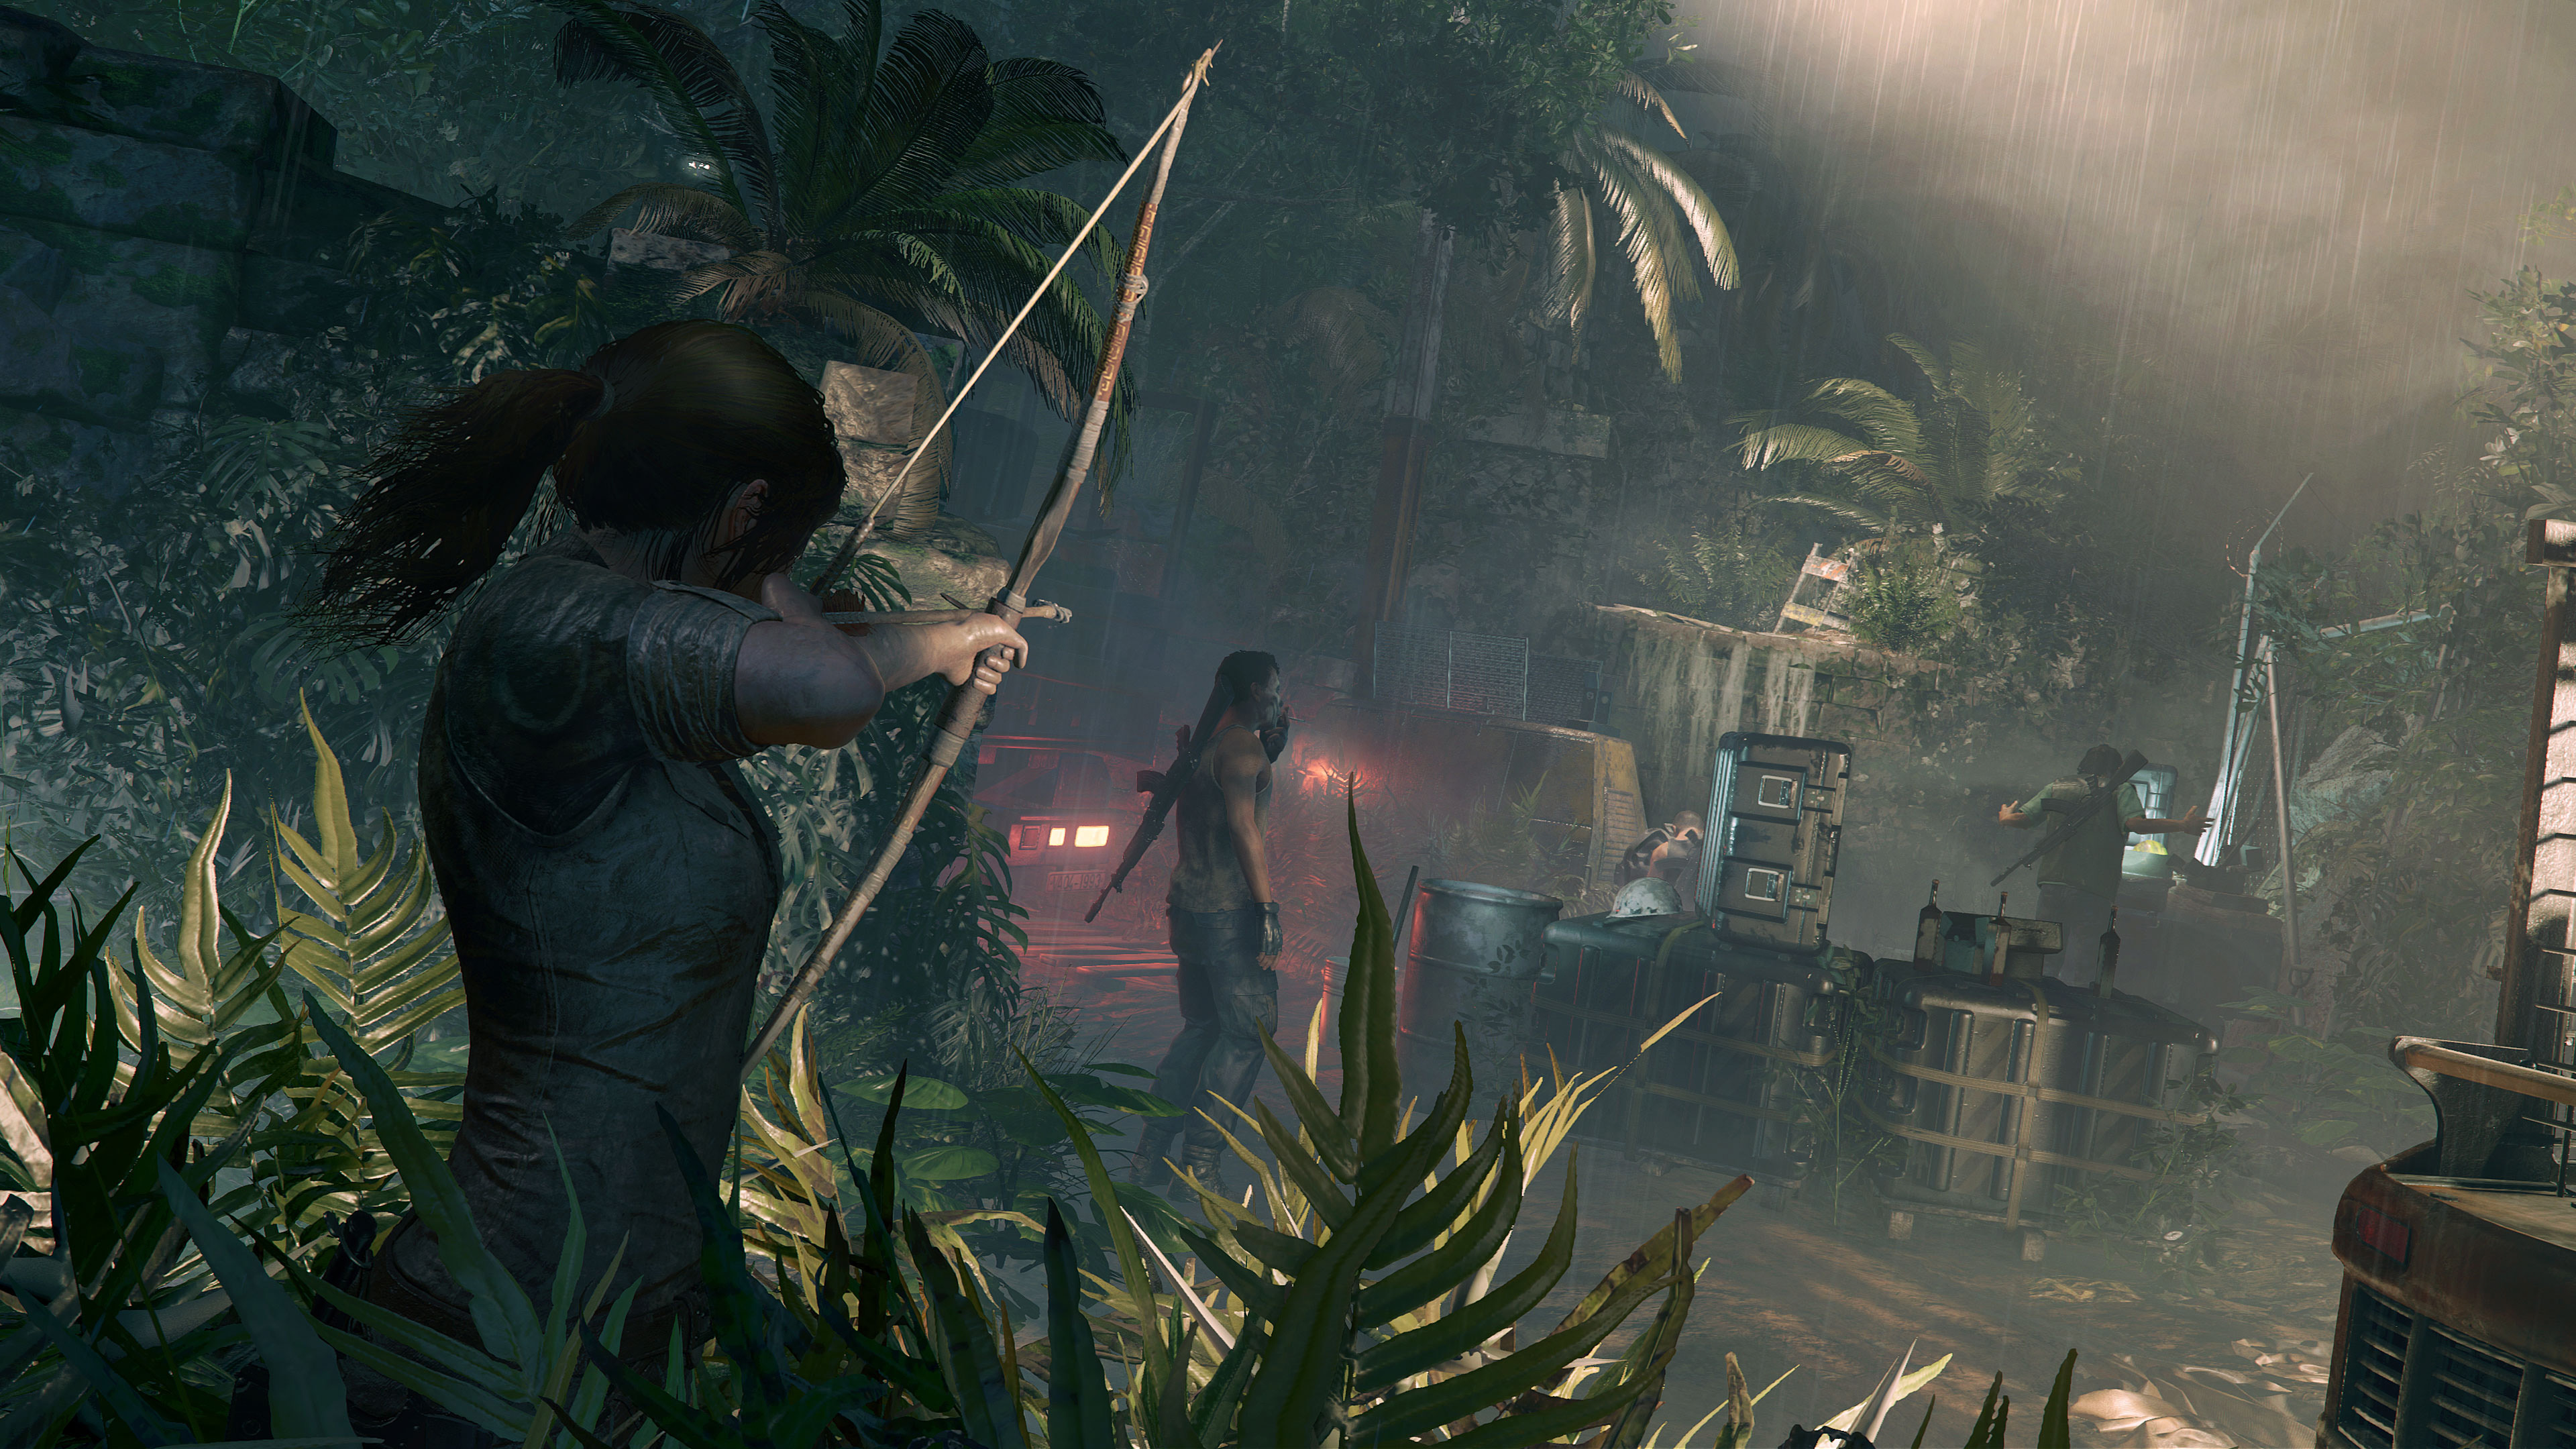 Shadow Of The Tomb Raider New Gameplay Footage Showcases Stealth